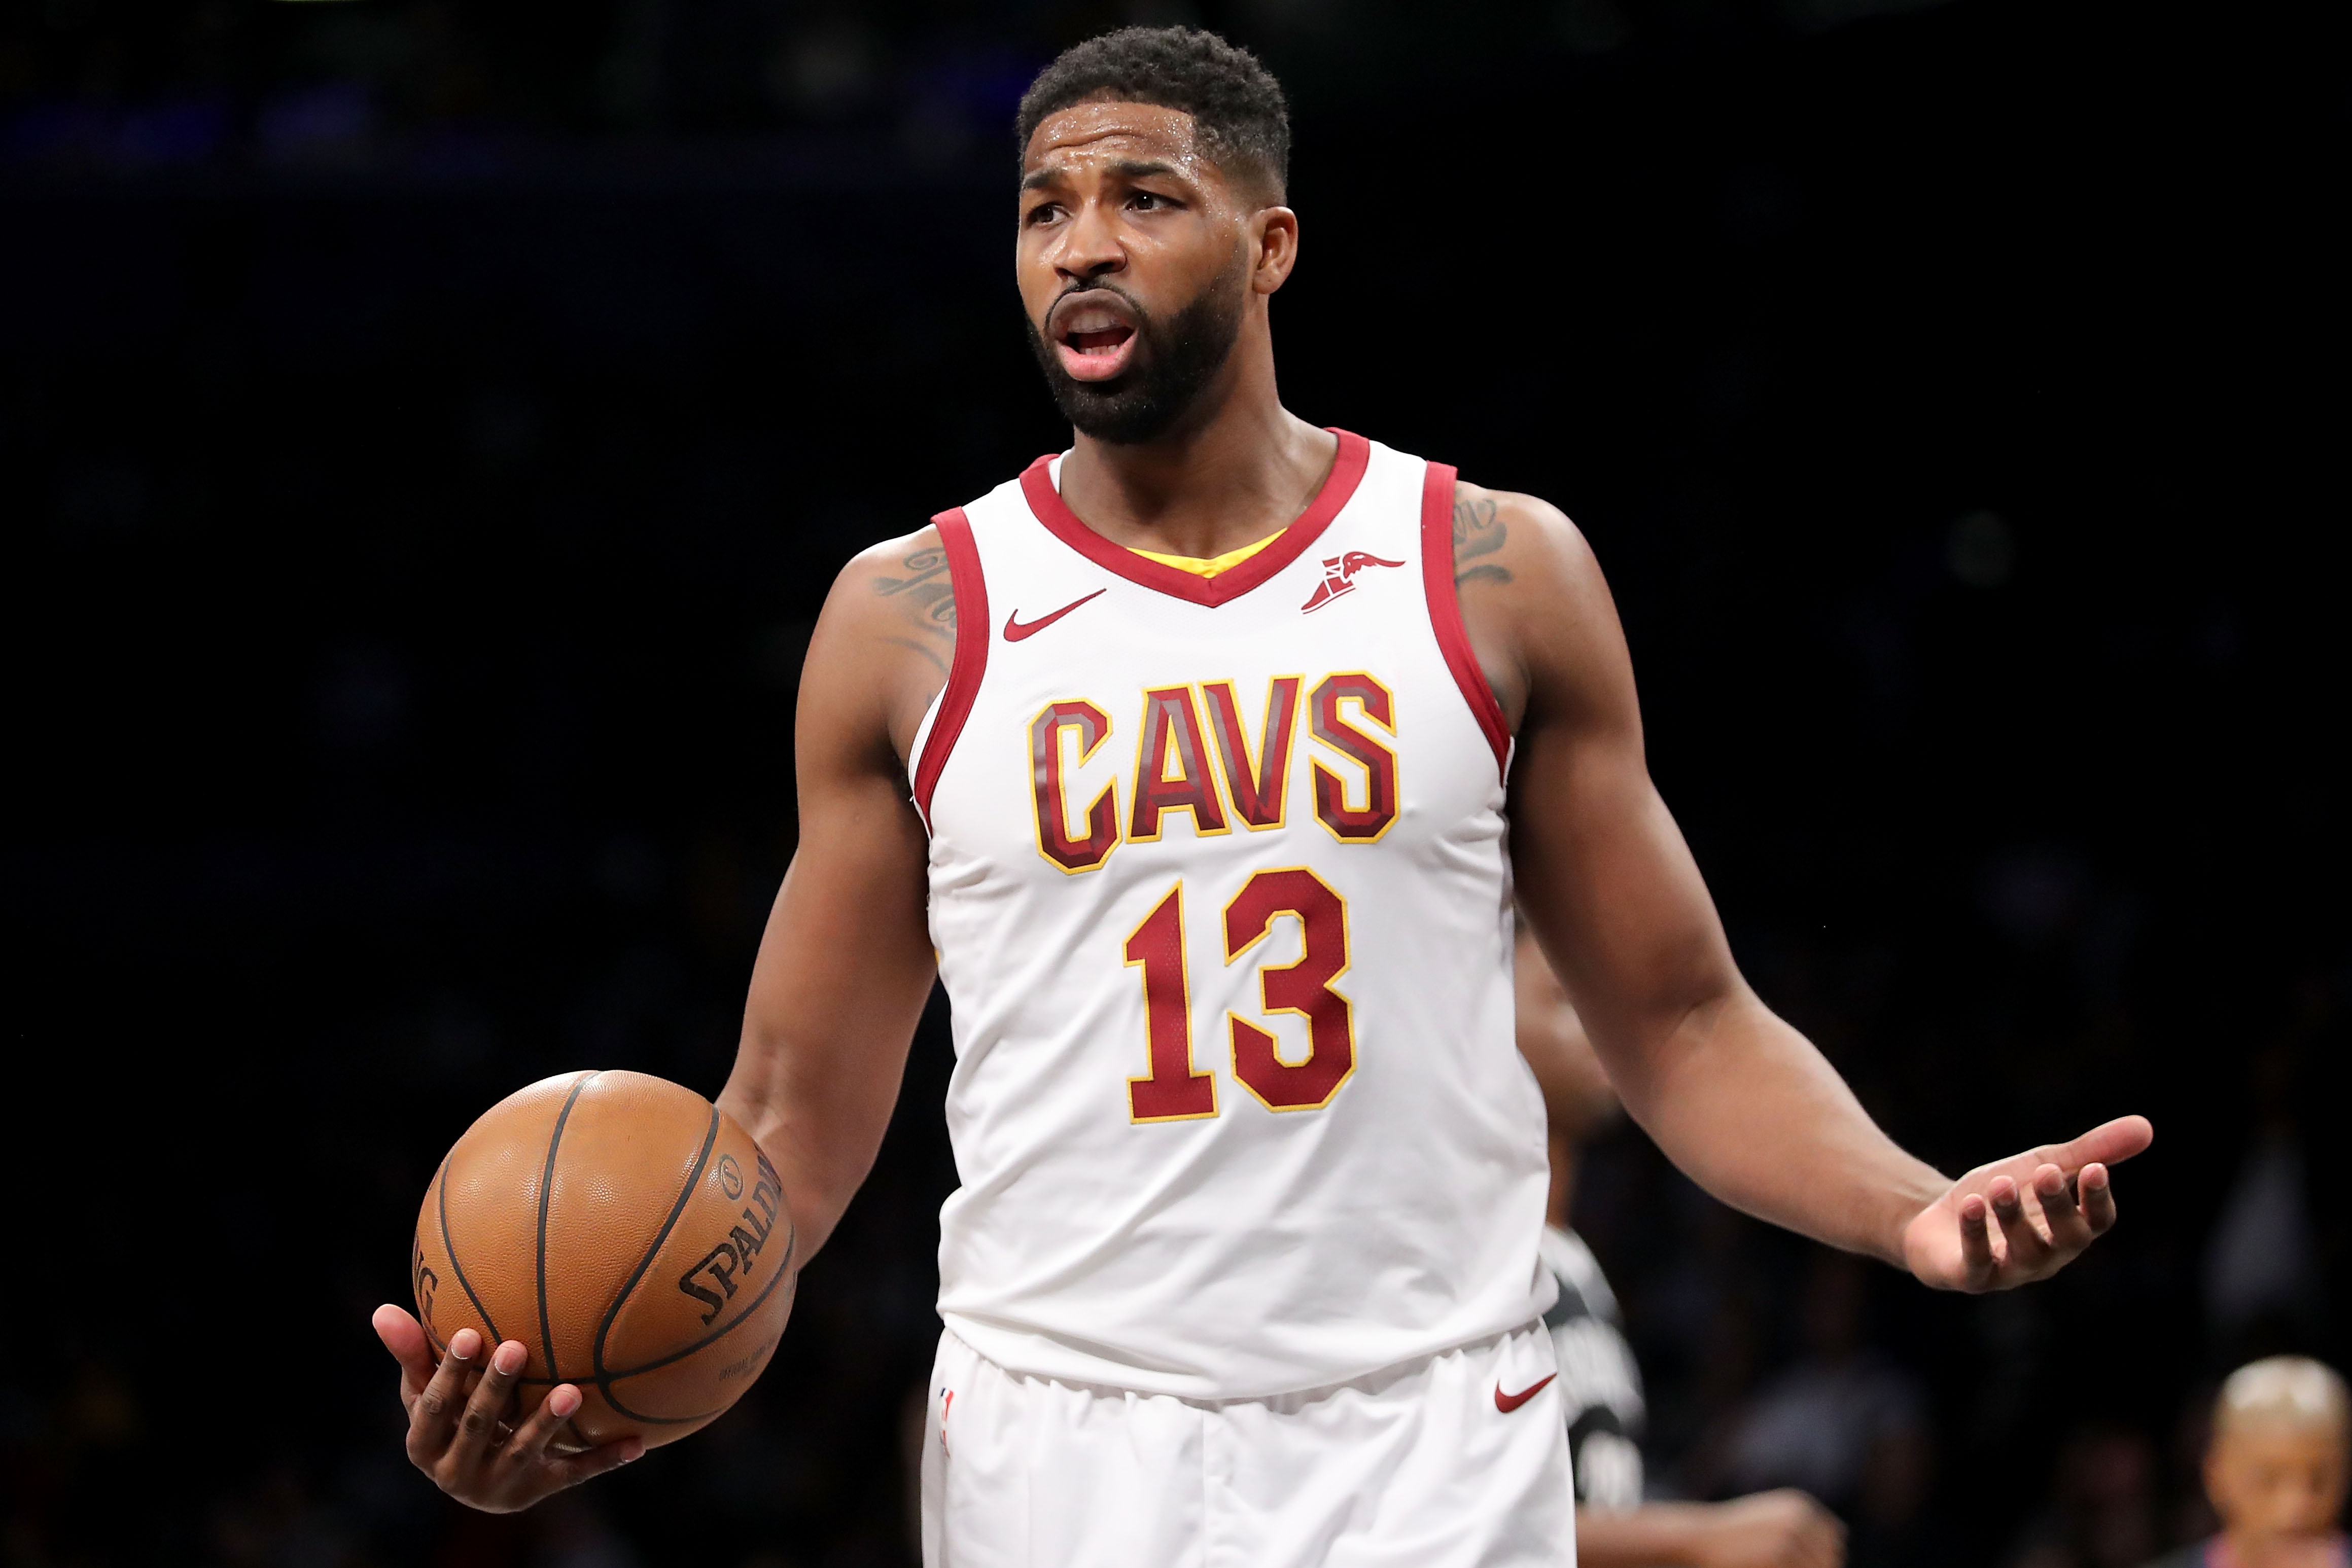 pictures This Is Apparently How Tristan Thompson Tried To Explain Away Those Cheating Videos